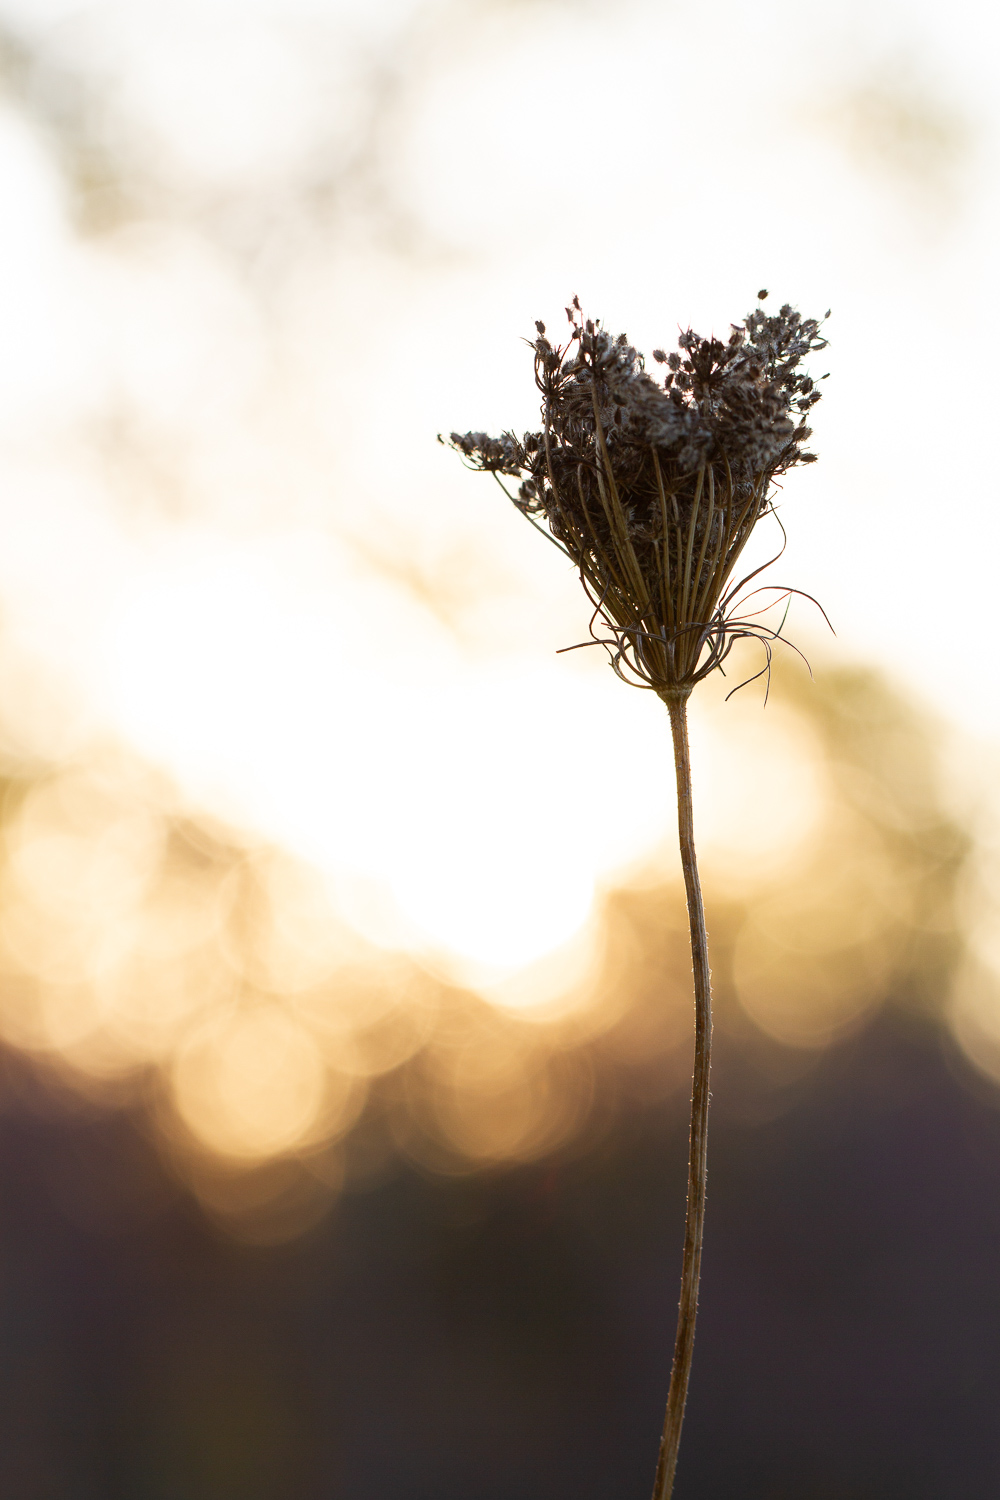 silhouette and bokeh of a flower - How to Use Backlight to Create Incredible Images